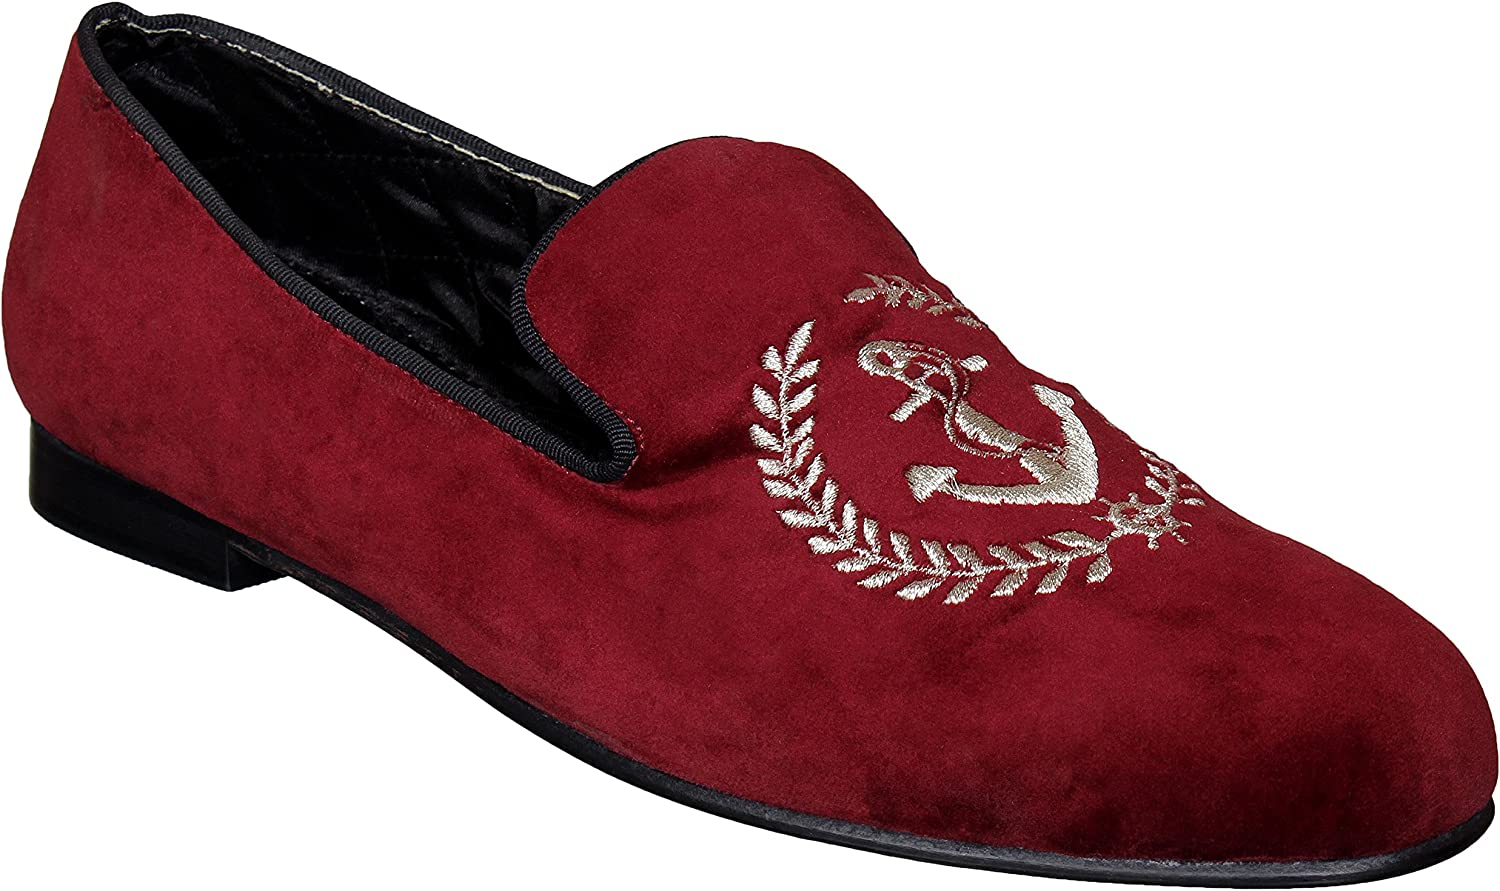 Lozano Maroon Velvet Slip ons with Anchor Embroidery Casual shoes Maroon